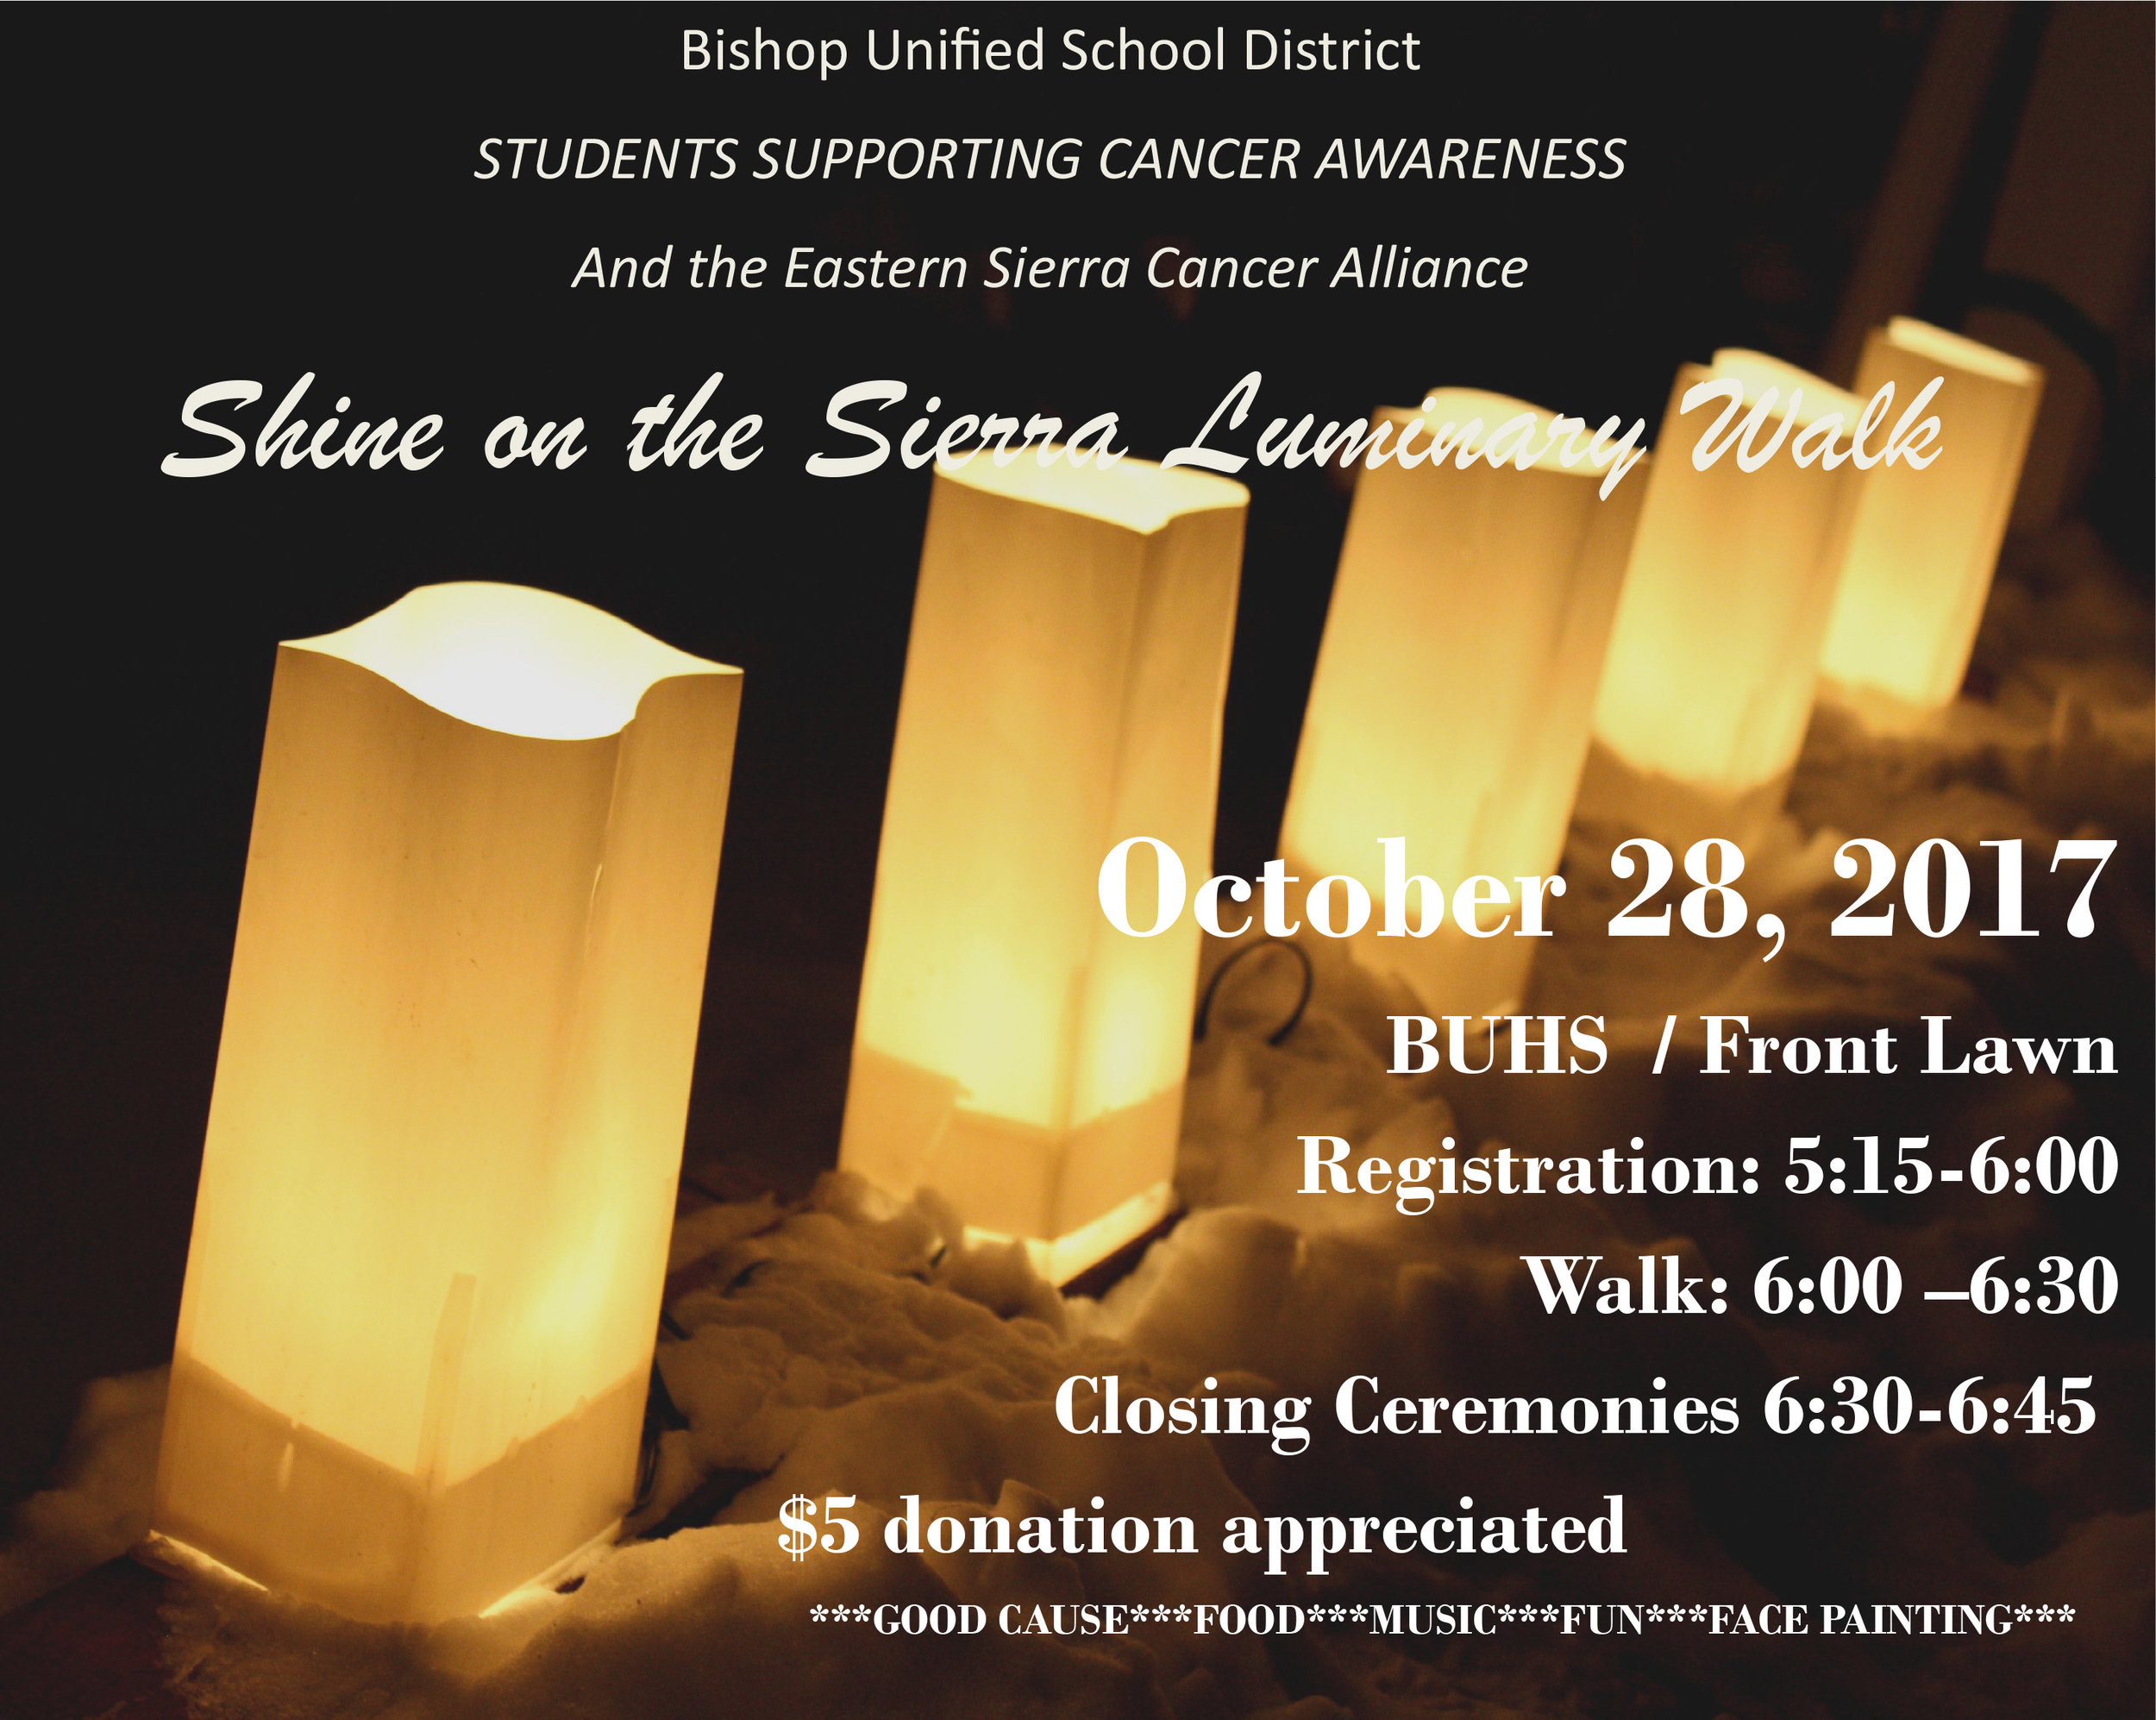 a_Luminary Walk Flyer 2017_18.jpg